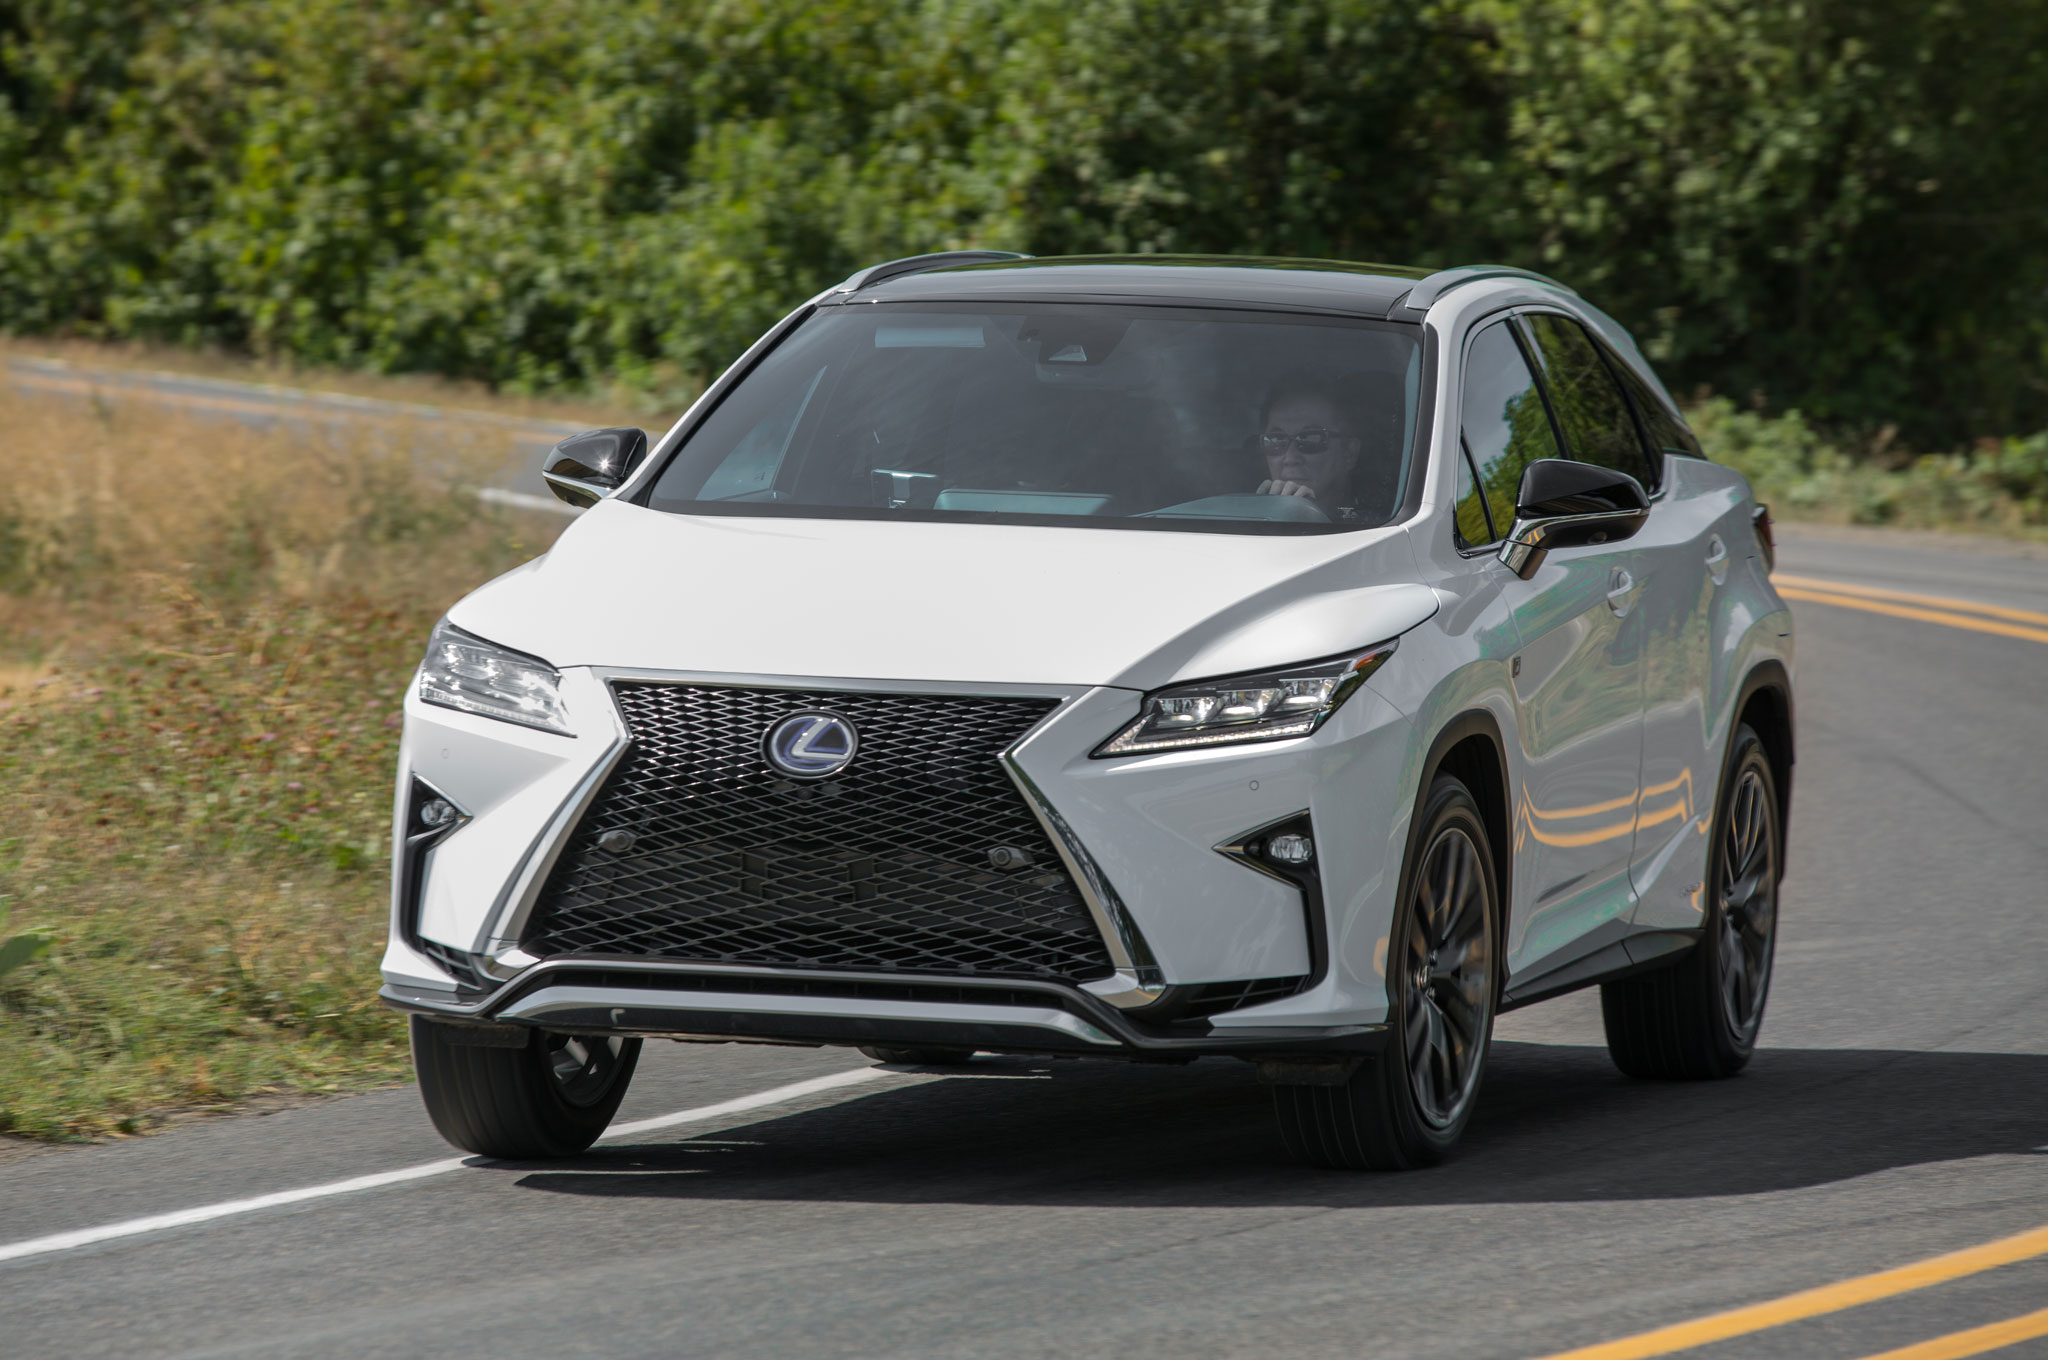 http://st.automobilemag.com/uploads/sites/11/2015/09/2016-Lexus-RX-350-AWD-F-Sport-front-three-quarter-in-motion-08.jpg